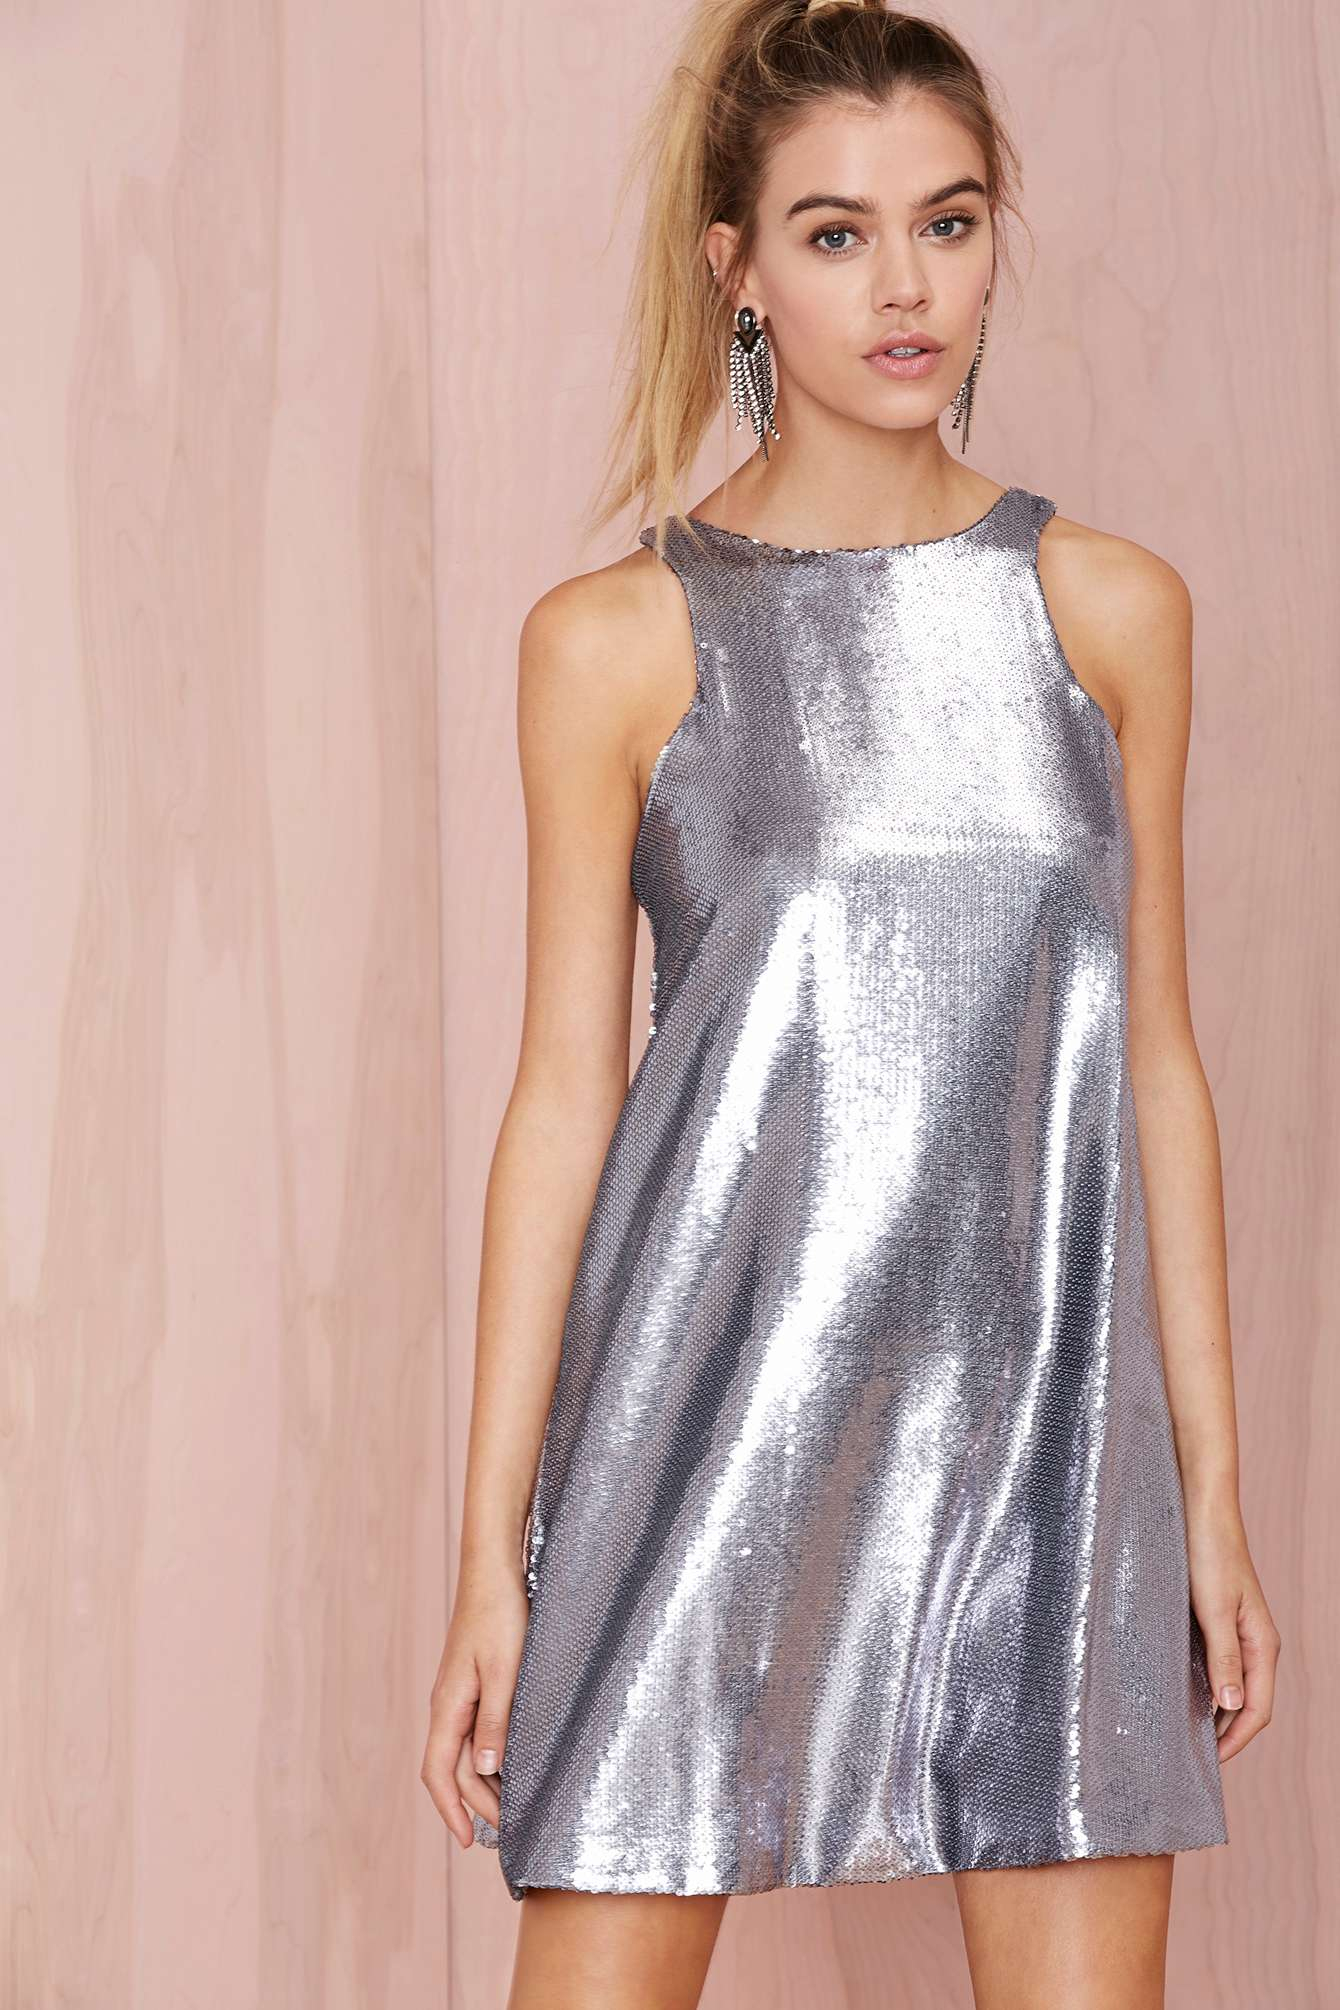 Lyst - Nasty Gal Glamorous Countdown Sequin Shift Dress in ...